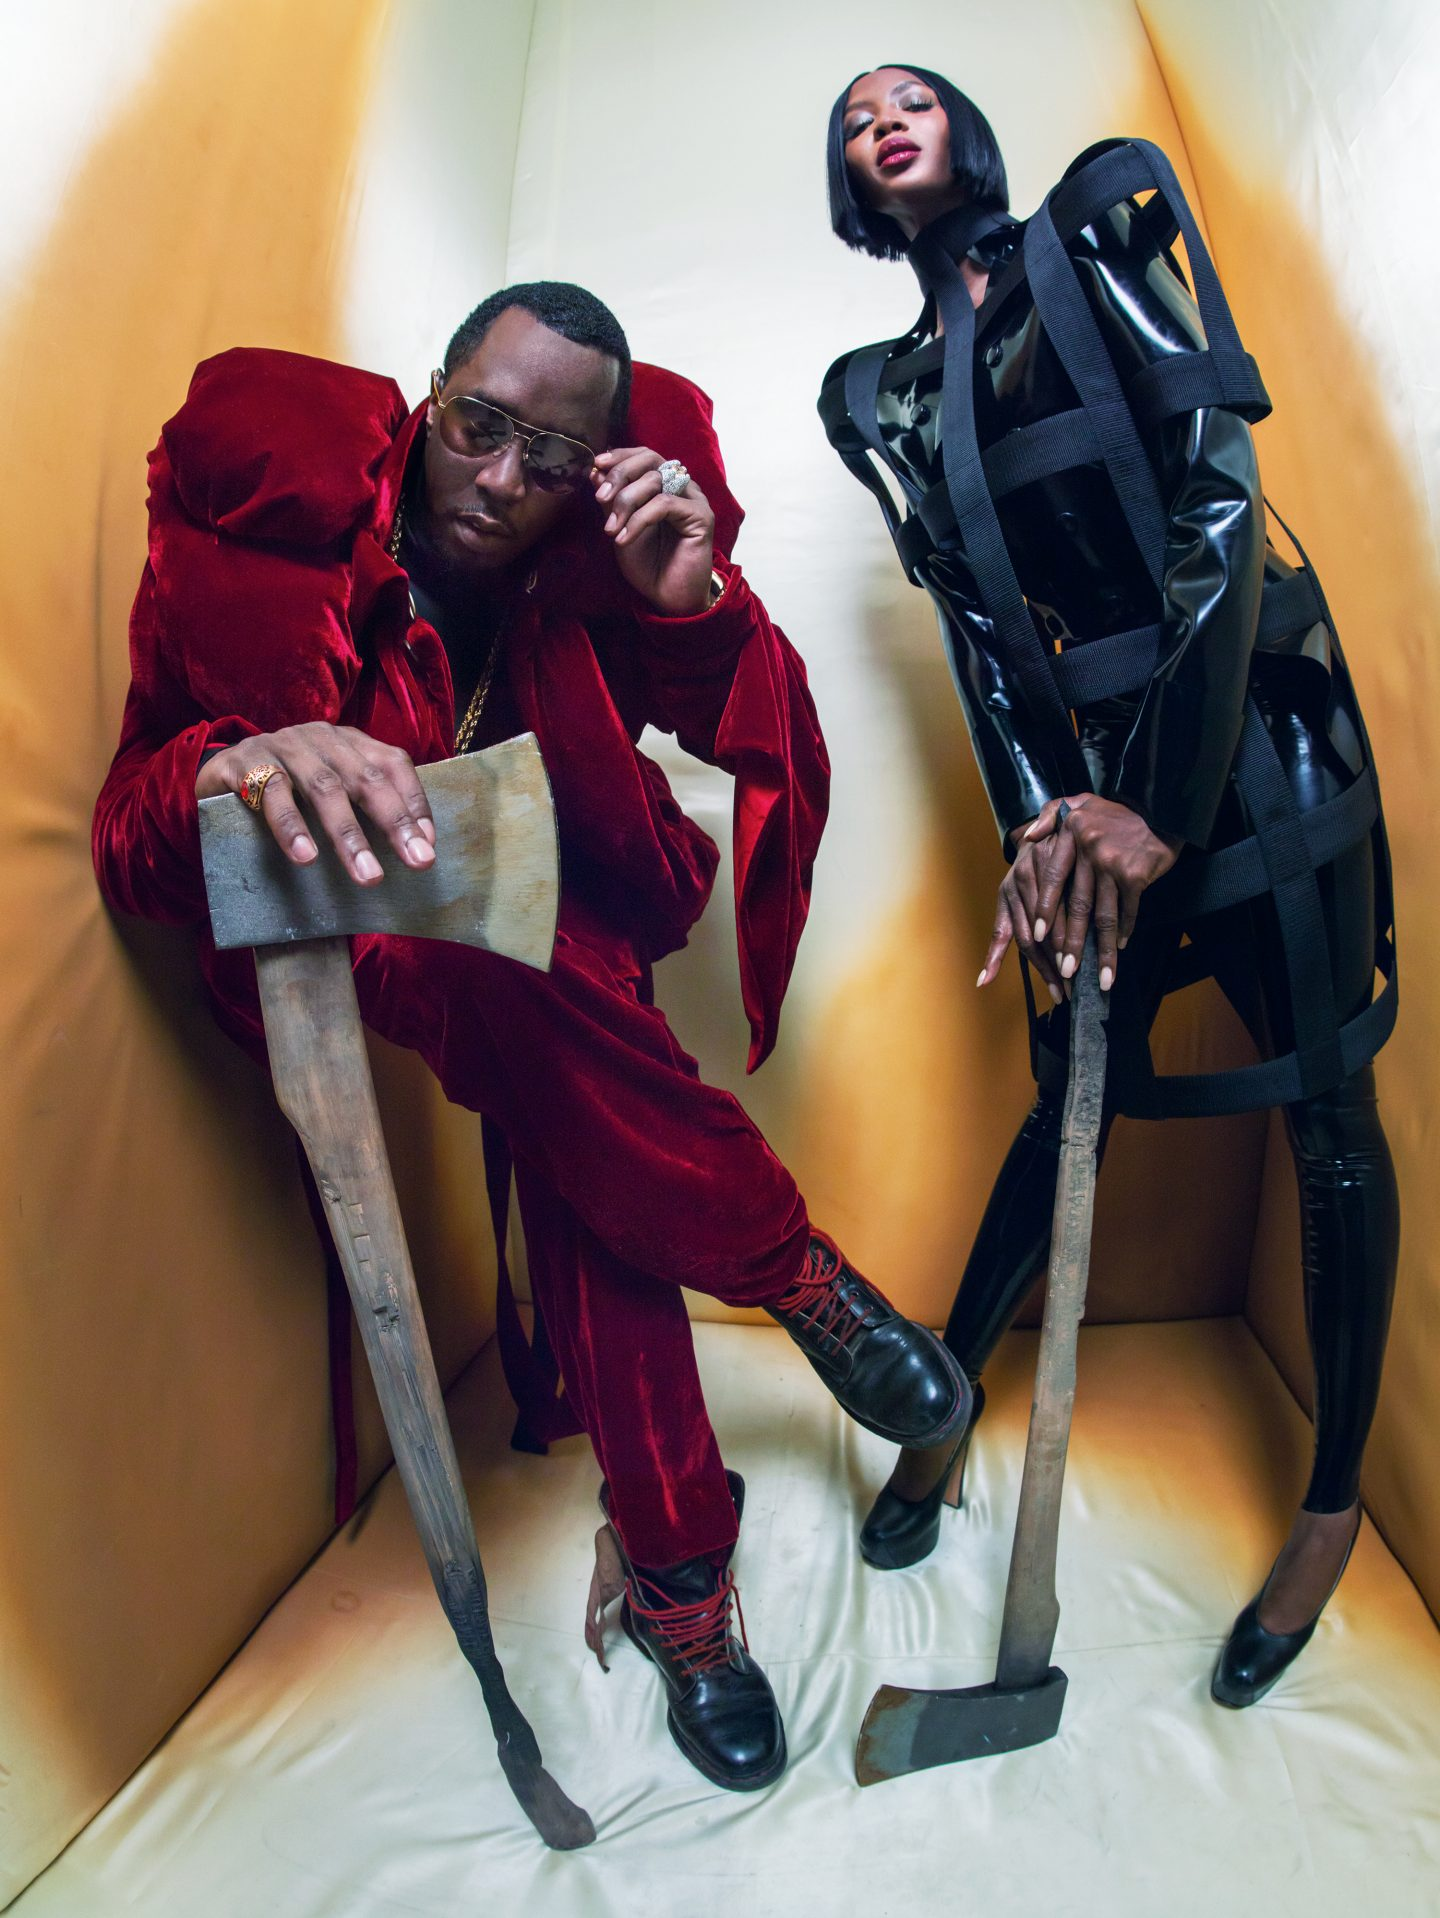 NAOMI CAMPBELL & SEAN DIDDY COMBS © Pirelli Kalender 2018, Tim Walker